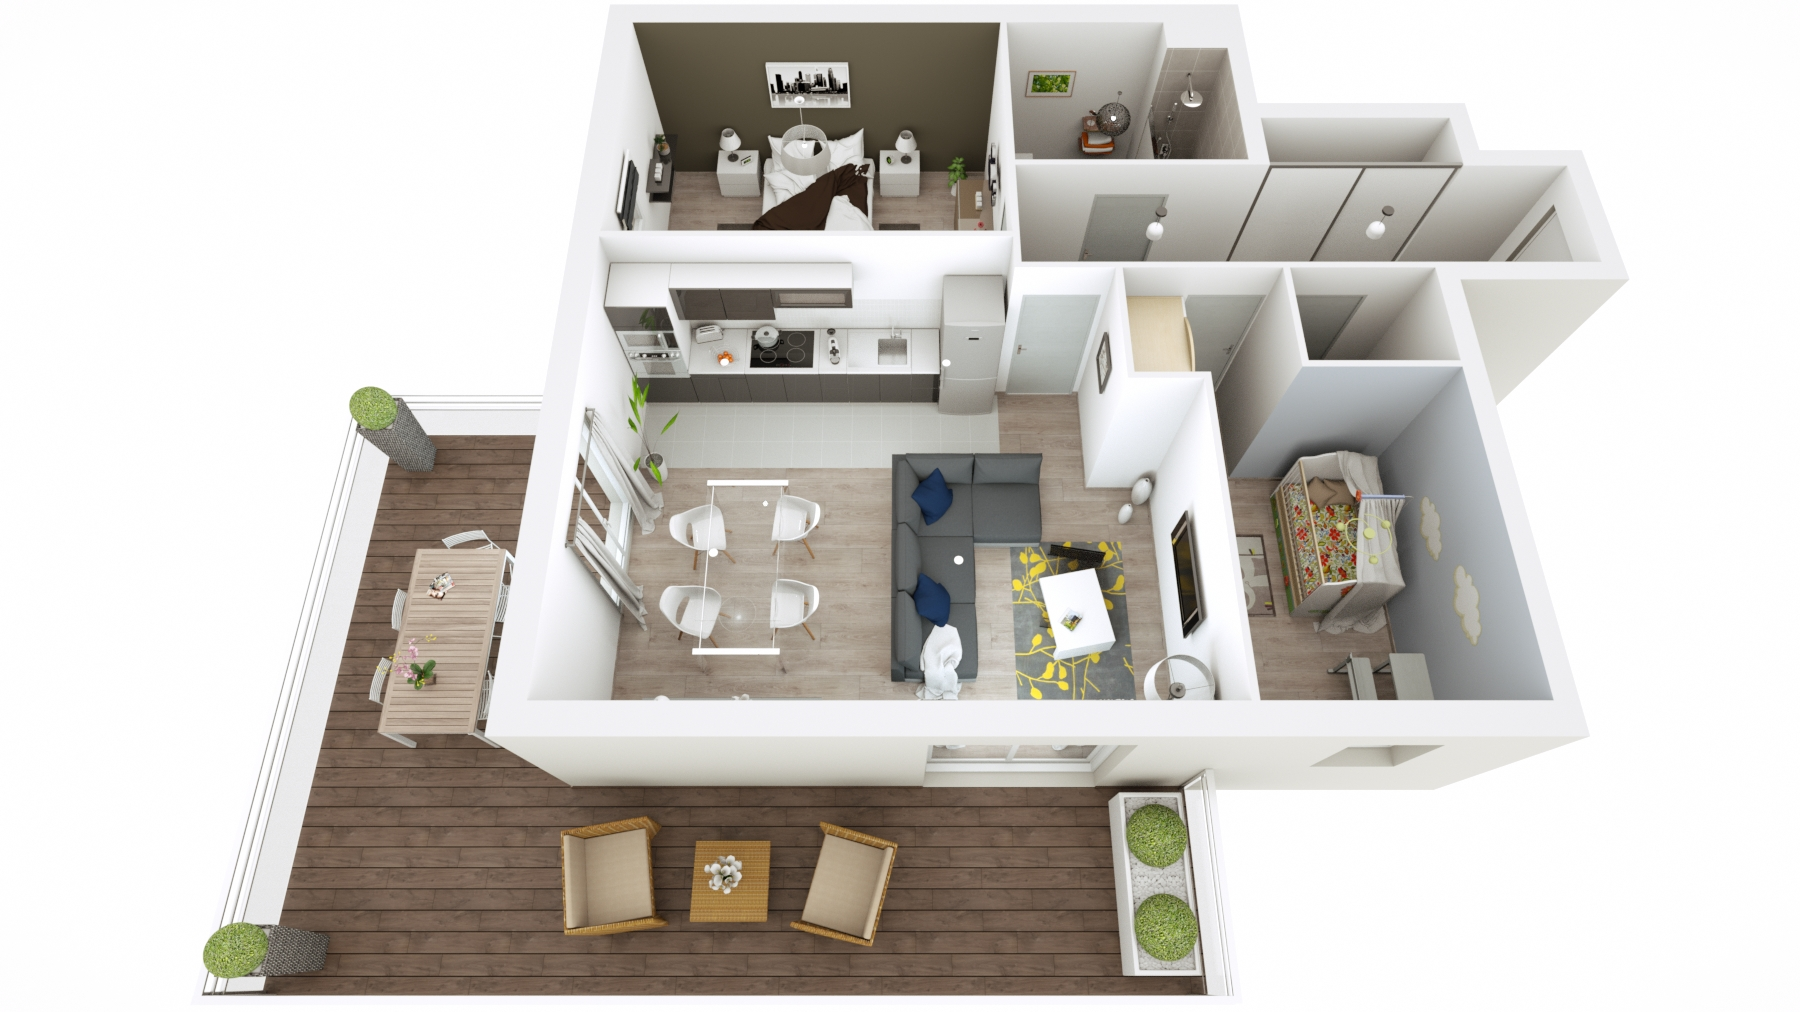 floorplan birdseye 01 - 3d Floor Planning